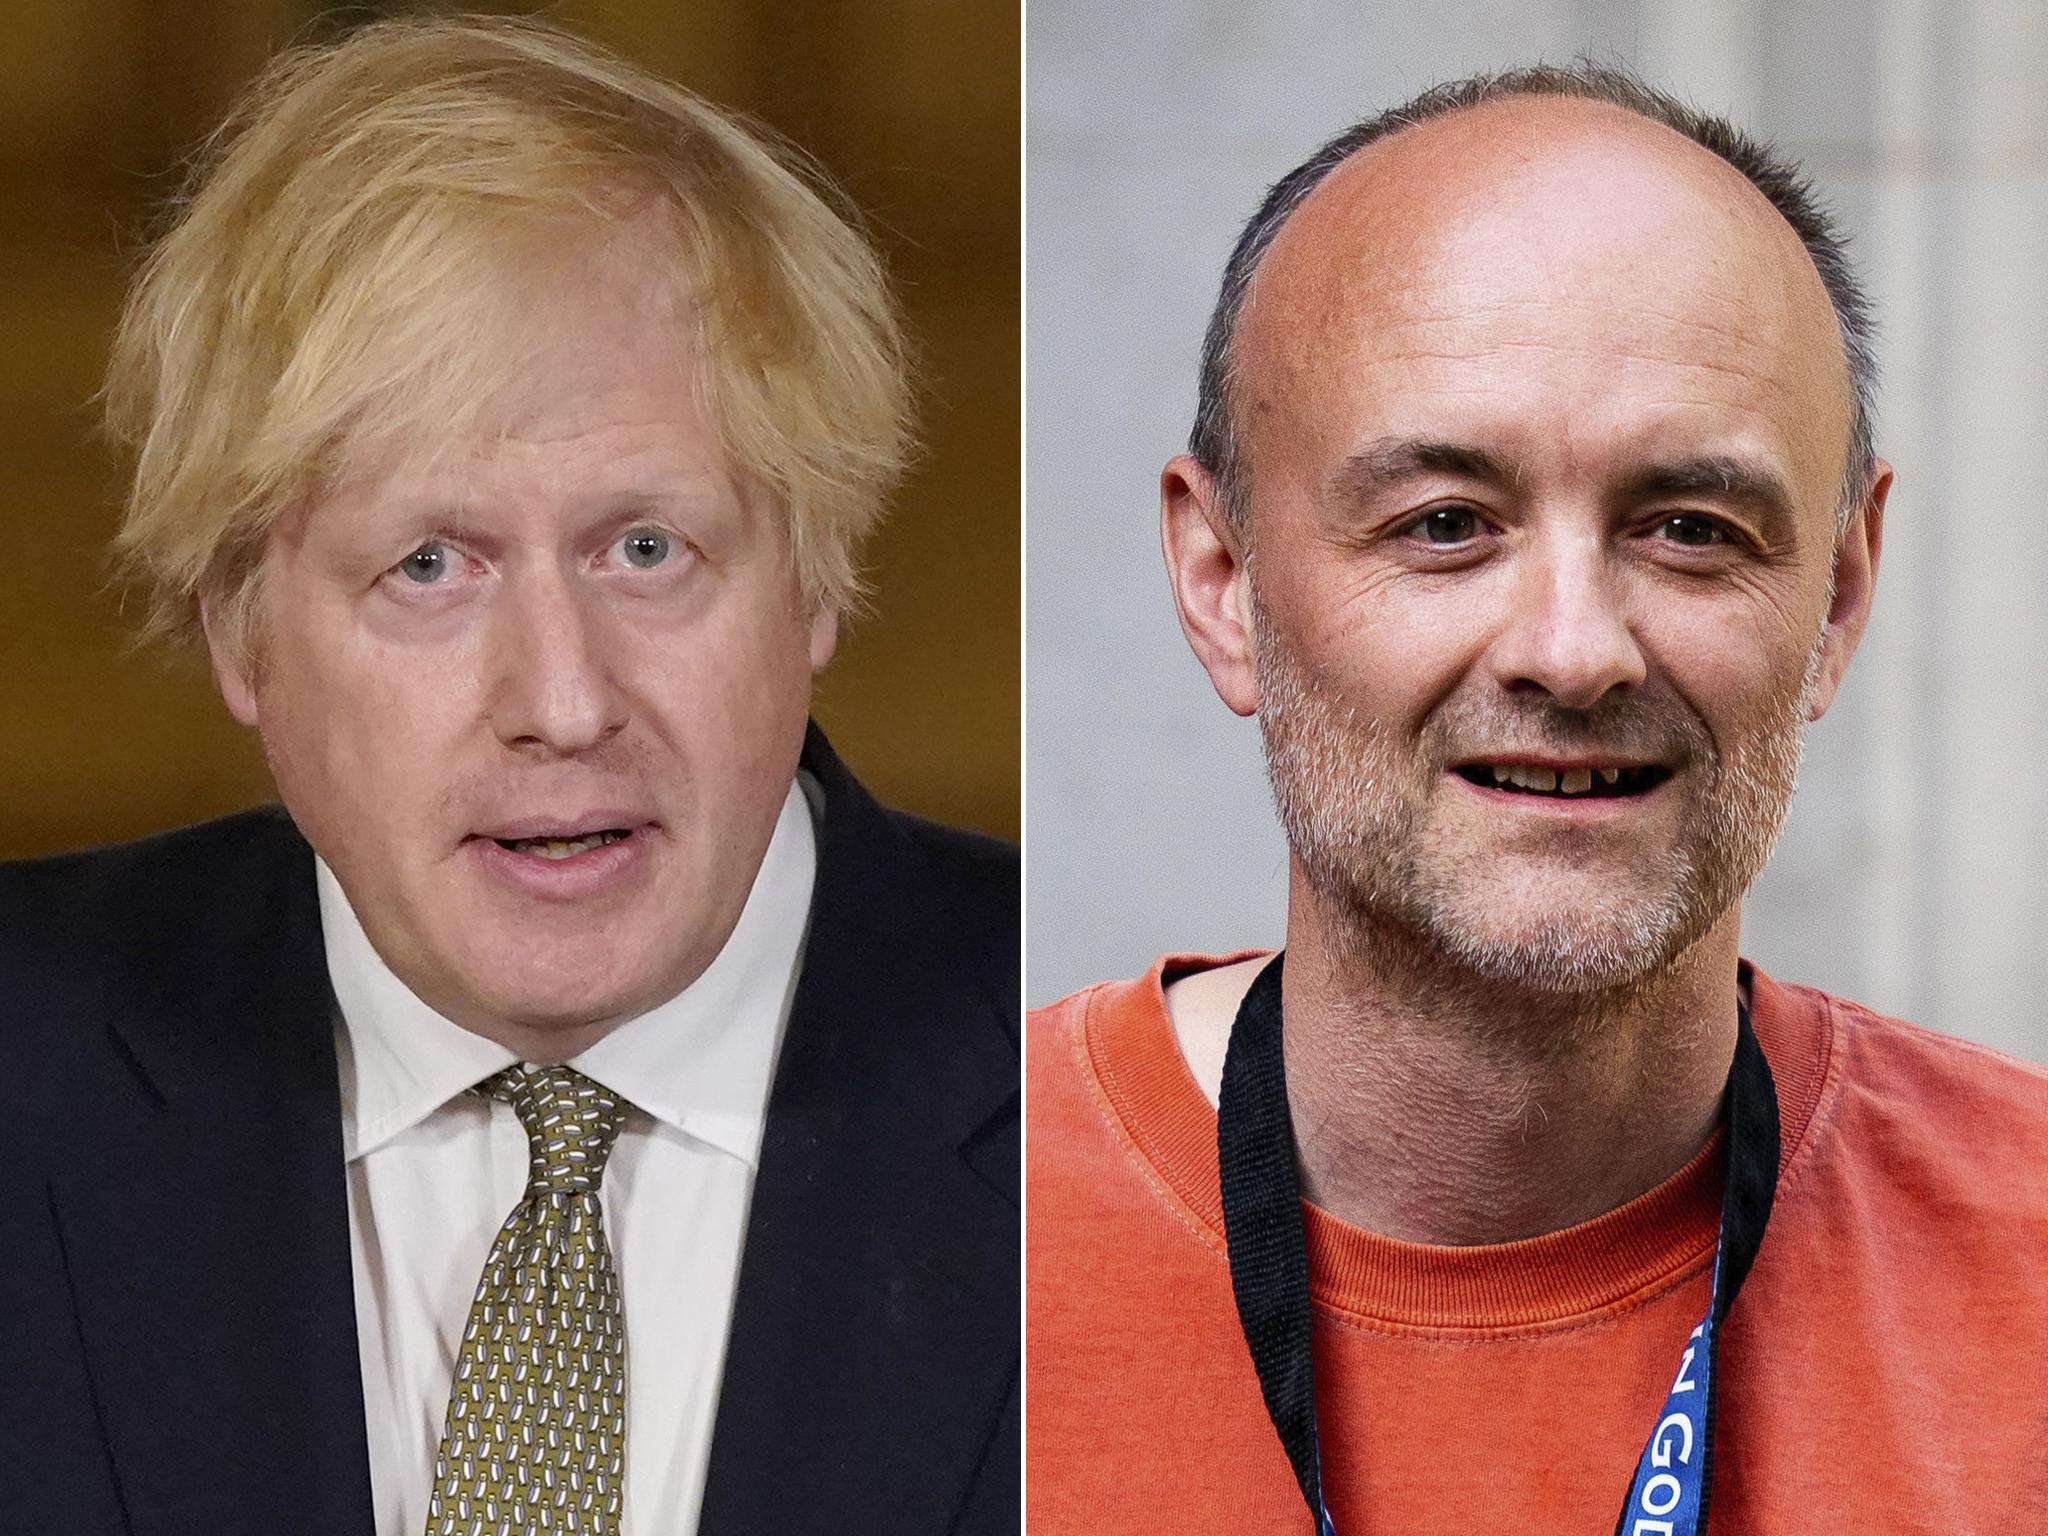 Dominic Cummings: How many Tory MPs have now called on Boris Johnson to sack top aide?